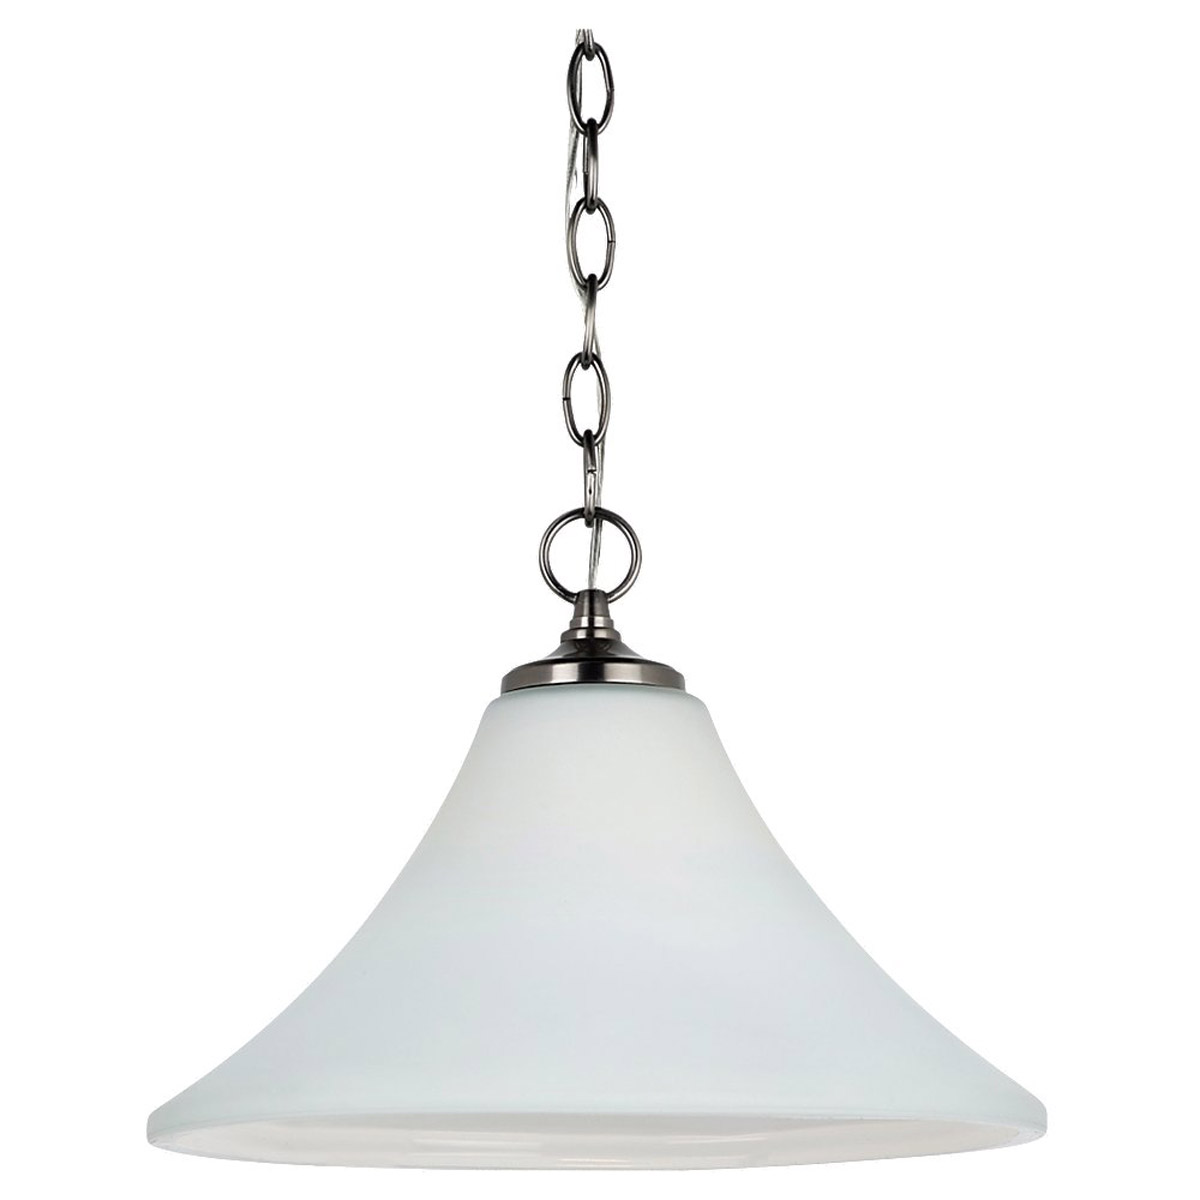 Sea Gull 65180BLE-965 Montreal 1 Light 14 inch Antique Brushed Nickel Pendant Down Light Ceiling Light in Etched,  White Inside Glass, Fluorescent photo